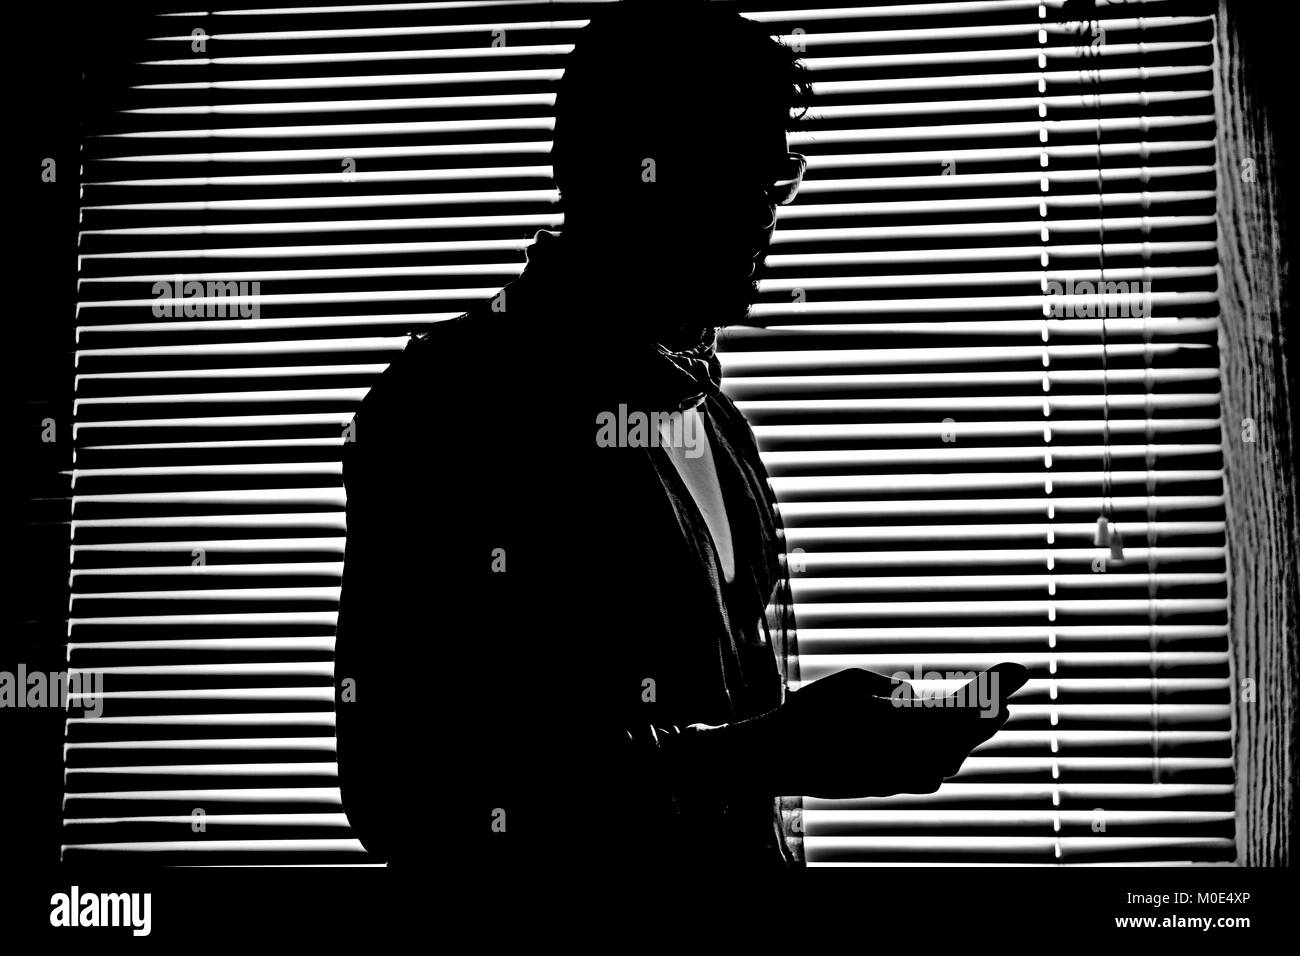 Striped pattern background for man silhouette and handshake silhouette dark figure - Stock Image